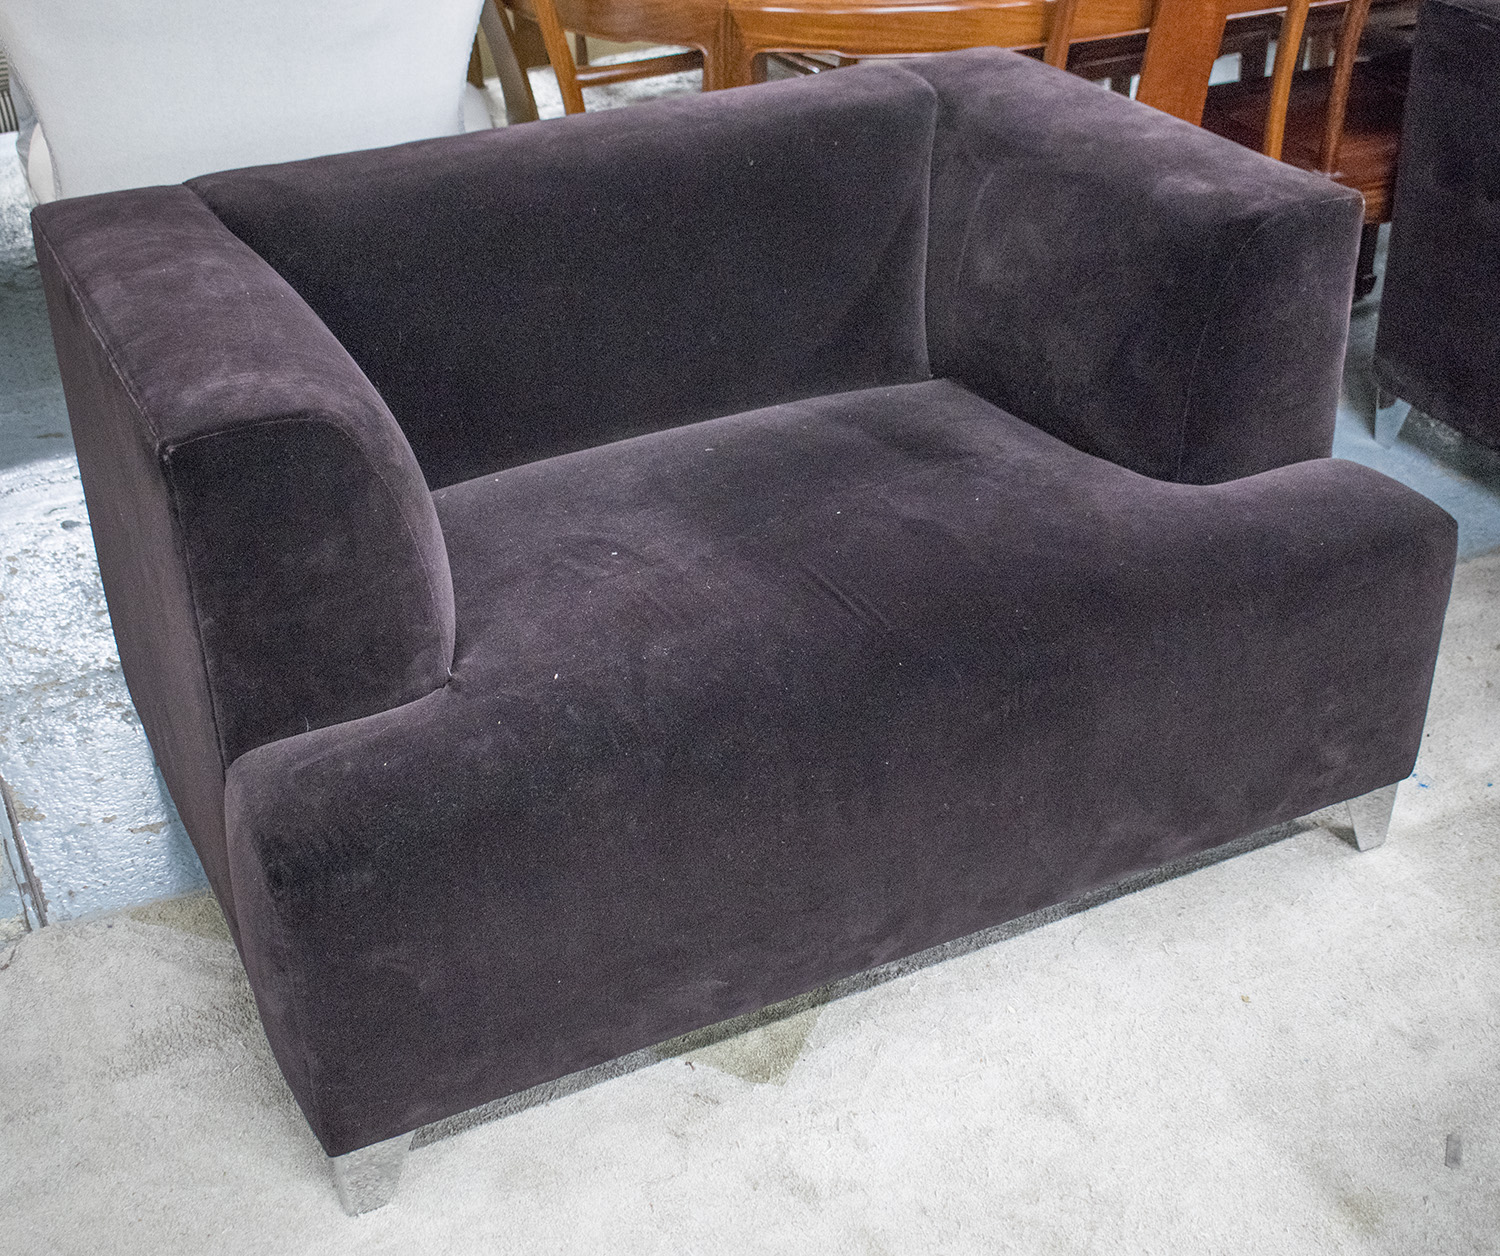 purple velvet upholstered sofa sets under 500 dollars armchair of square form